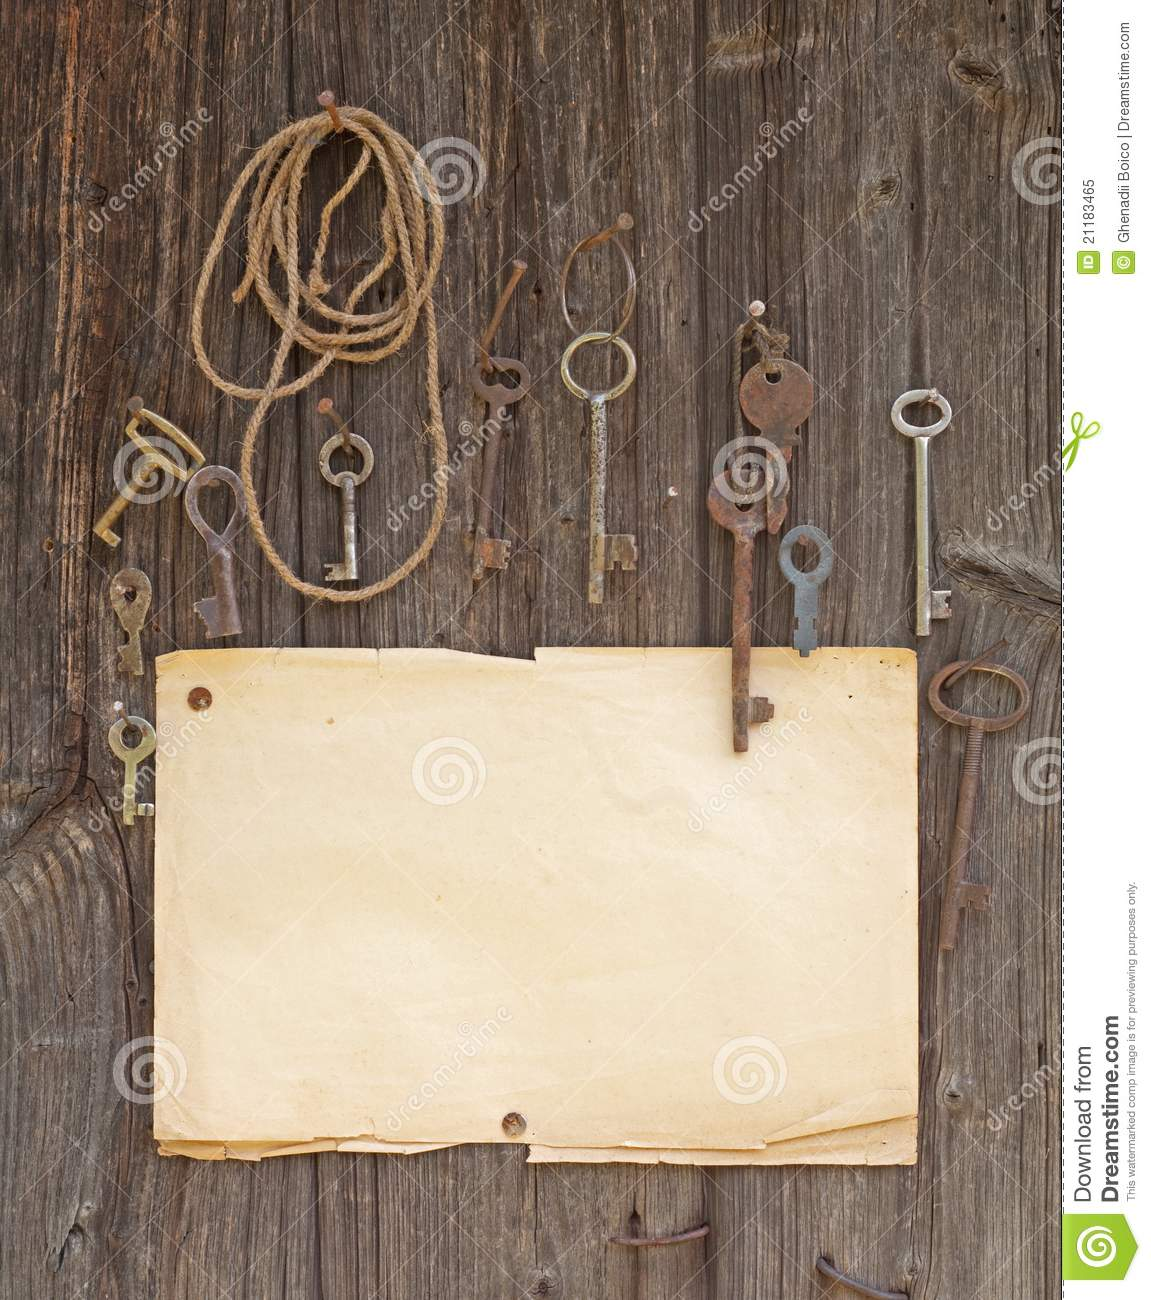 Old paper and keys